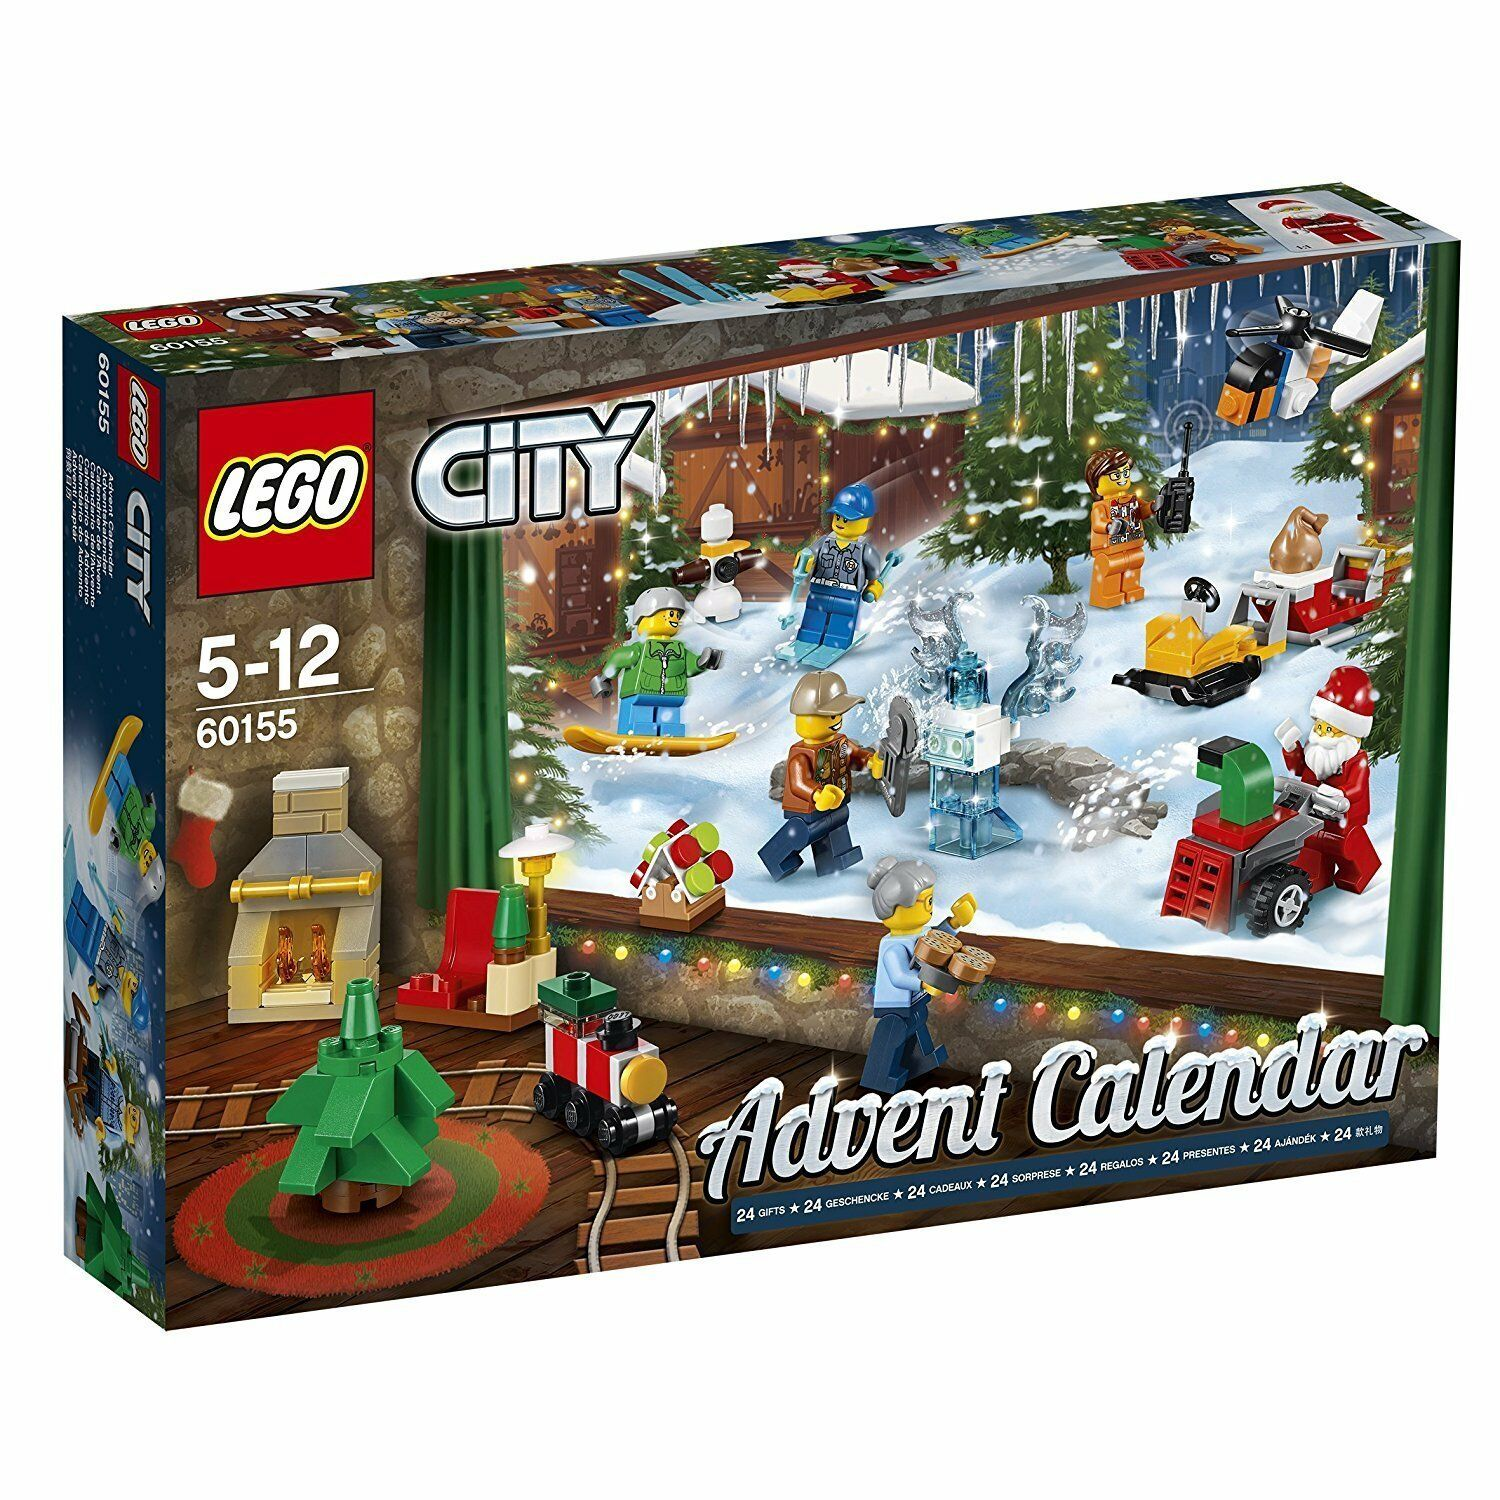 Lego City Advent Calendar Dated 2017 (Retired) 24 Gifts, Santa, Mini-Figs